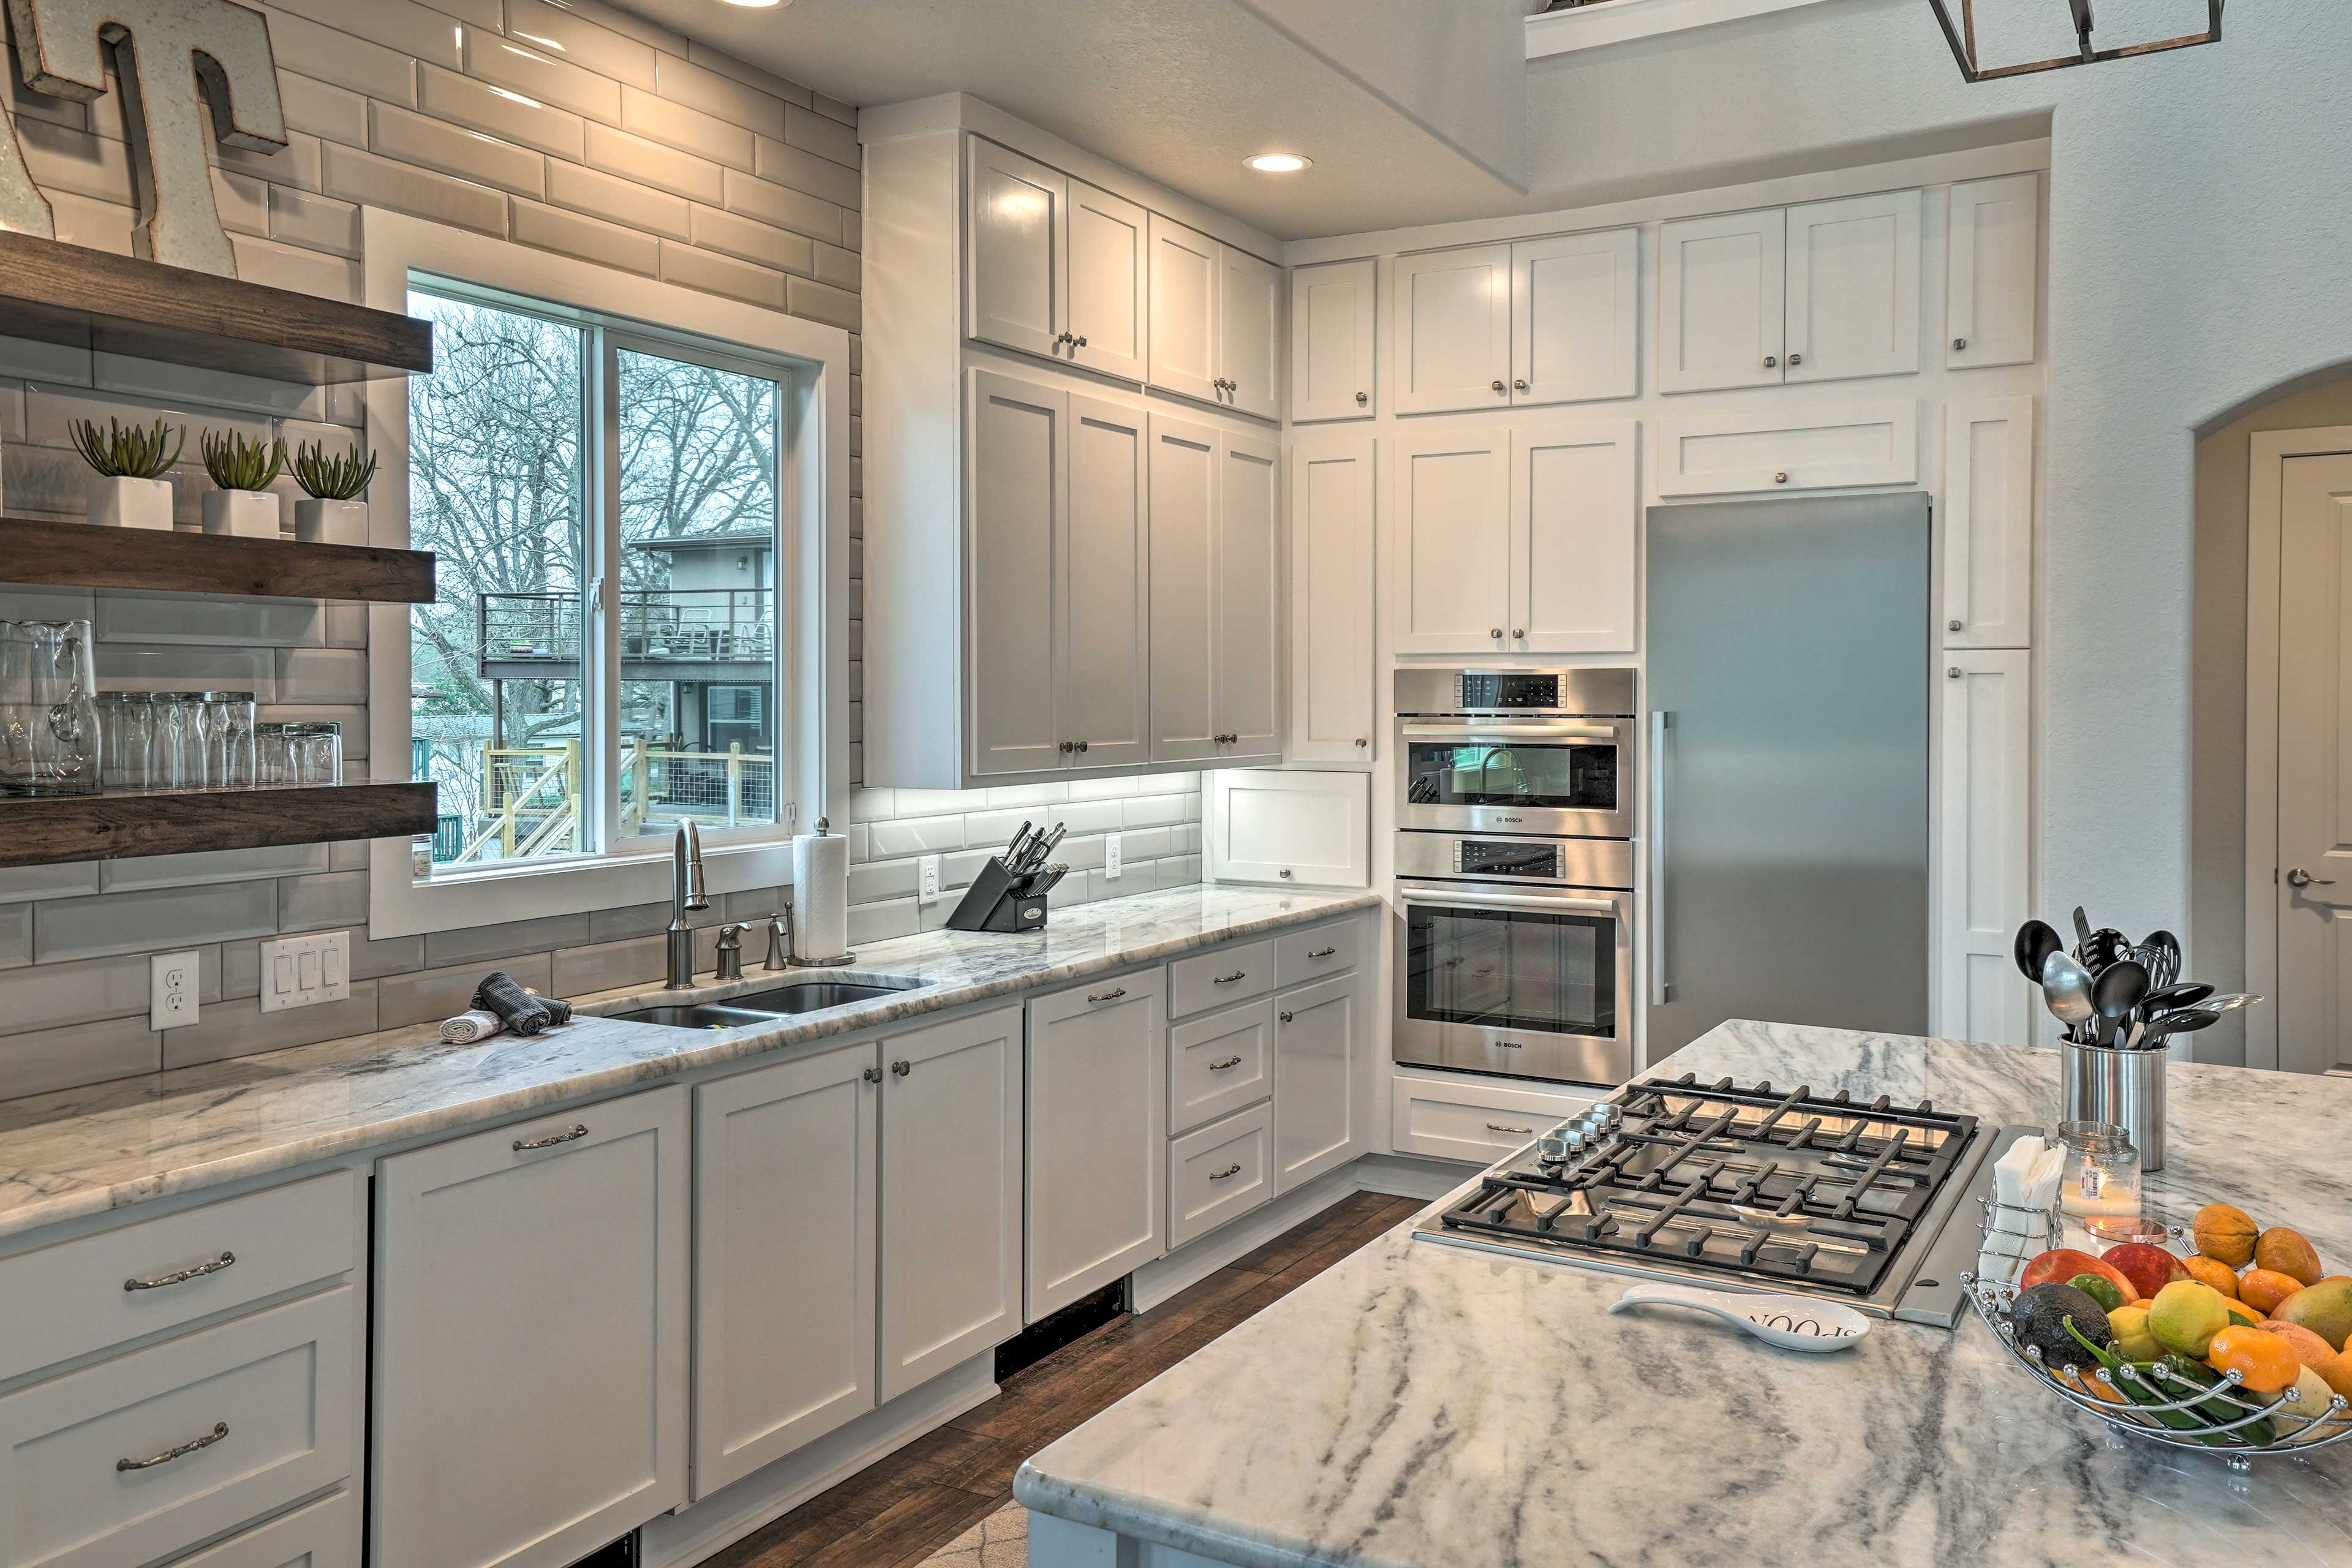 Utilize the stainless steel appliances in the fully equipped kitchen.